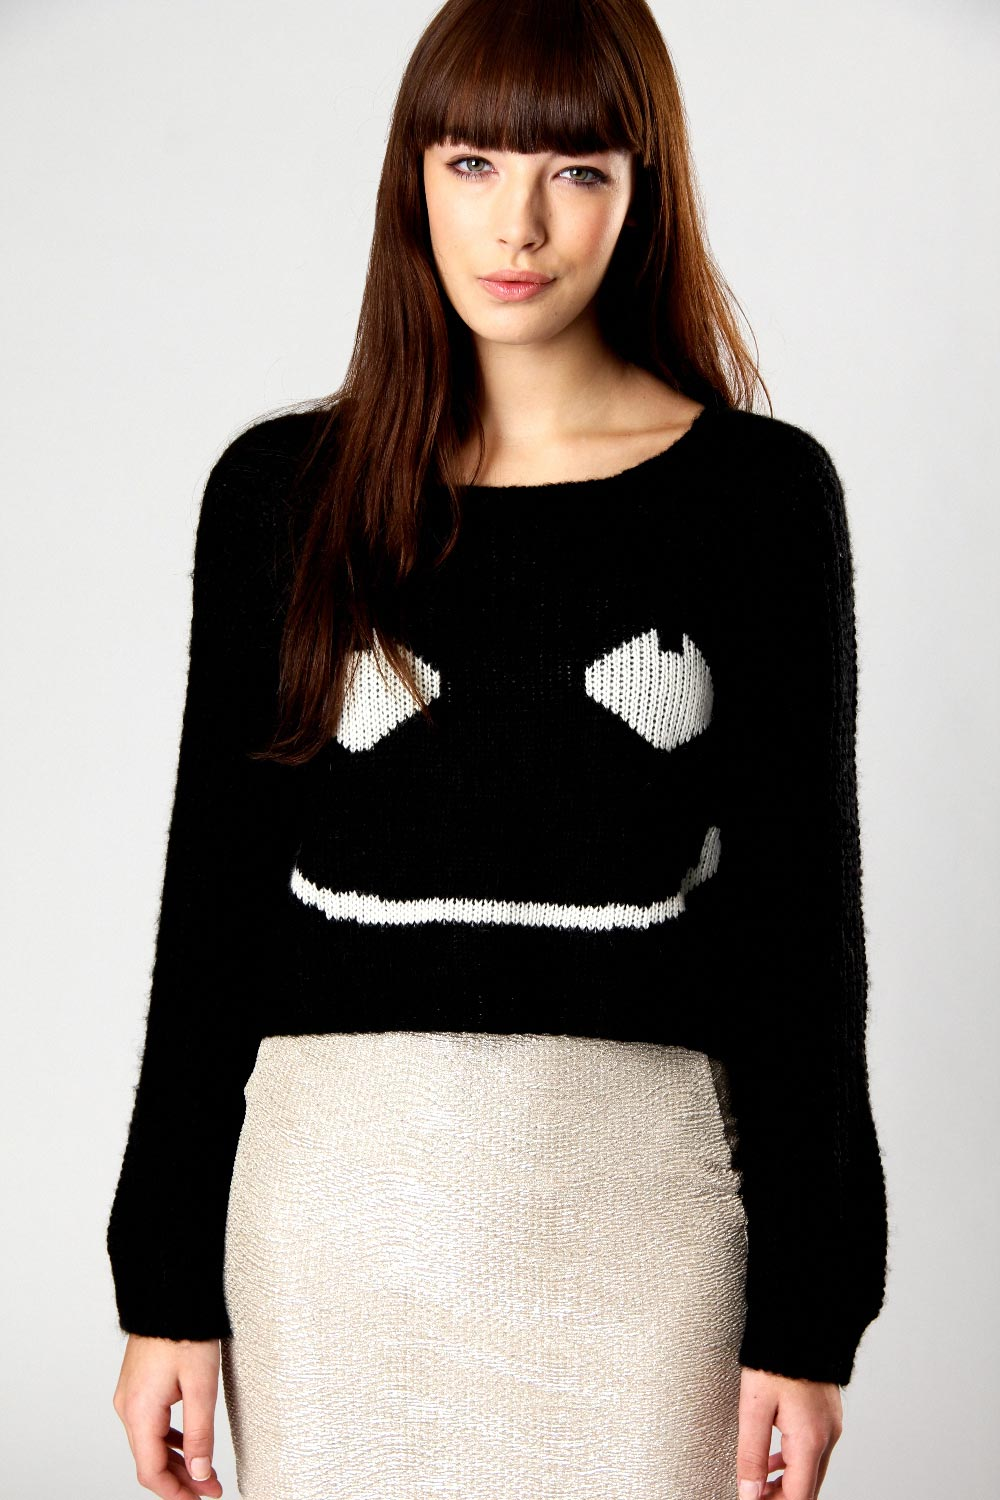 Boohoo-Mina-Cropped-Smiley-Face-Knit-Acrylic-Jumper-BNWT